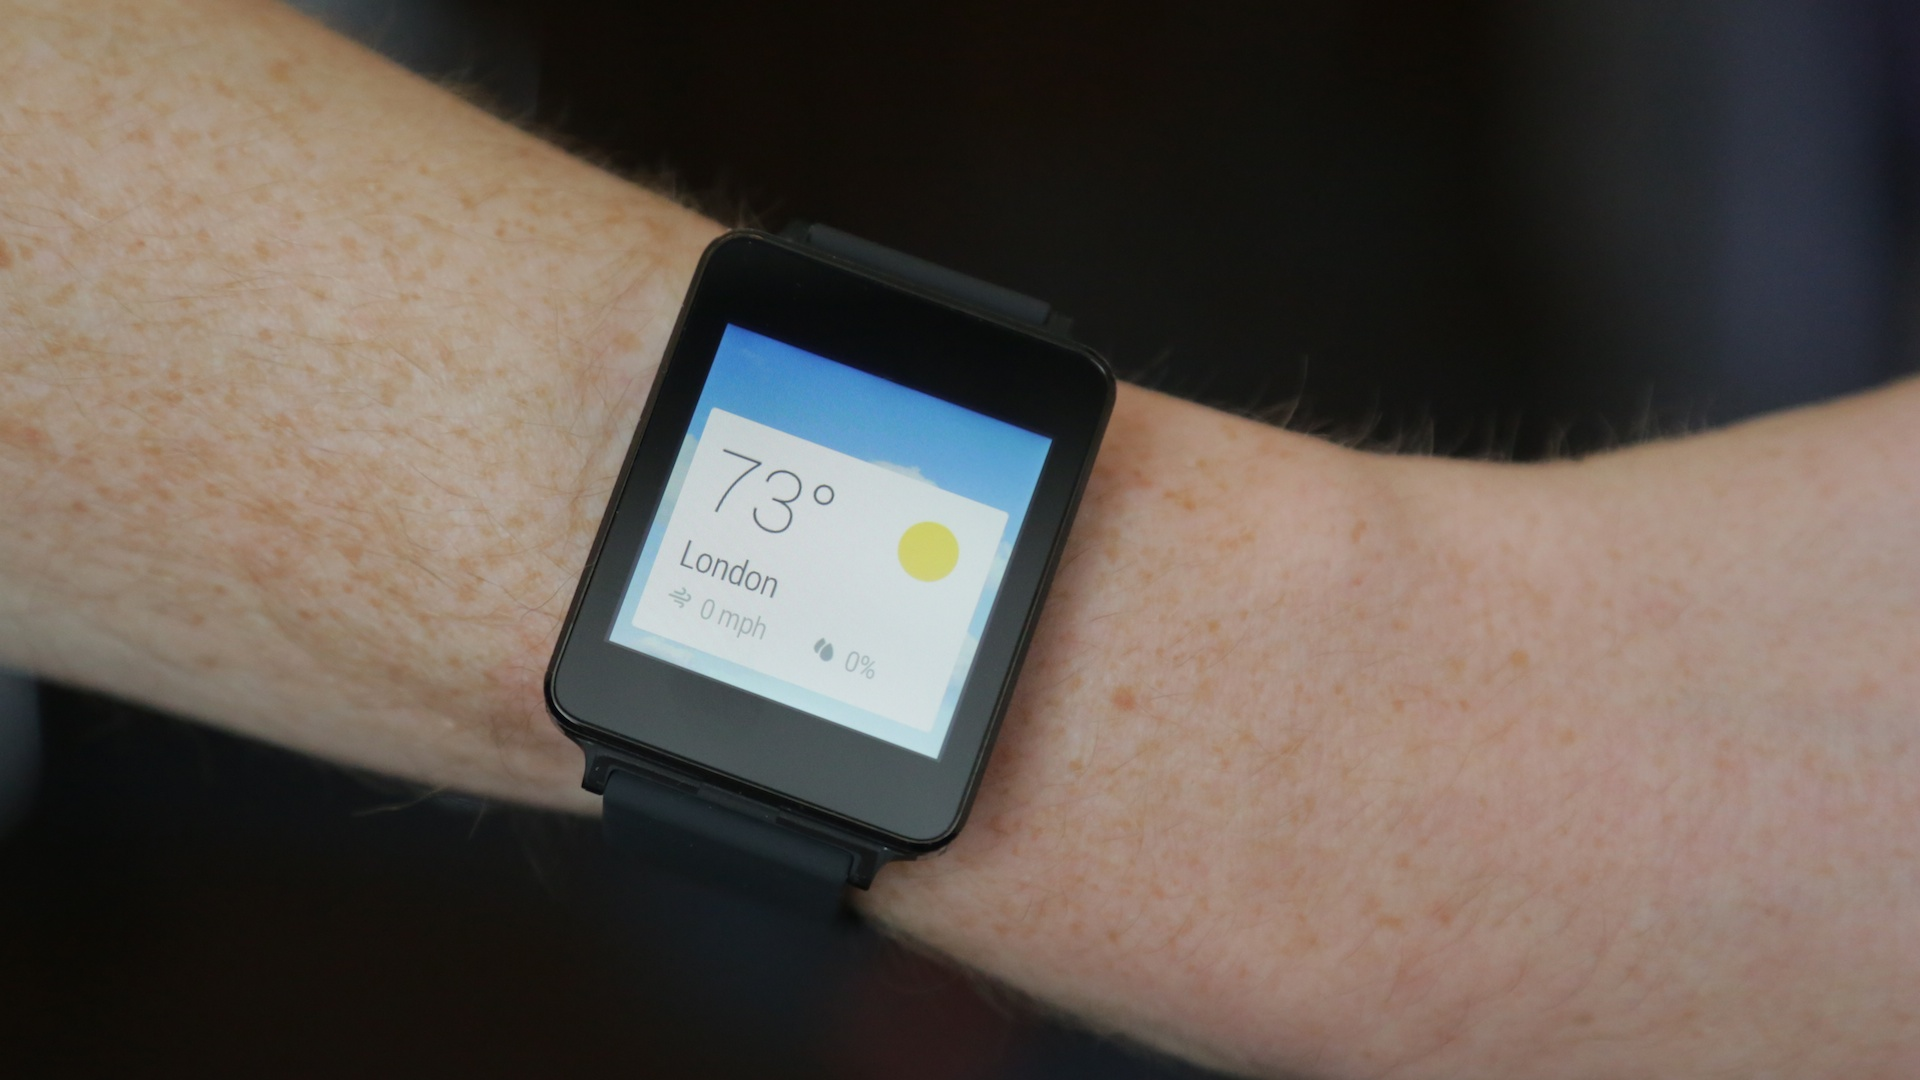 lg g watch hands-on (5)